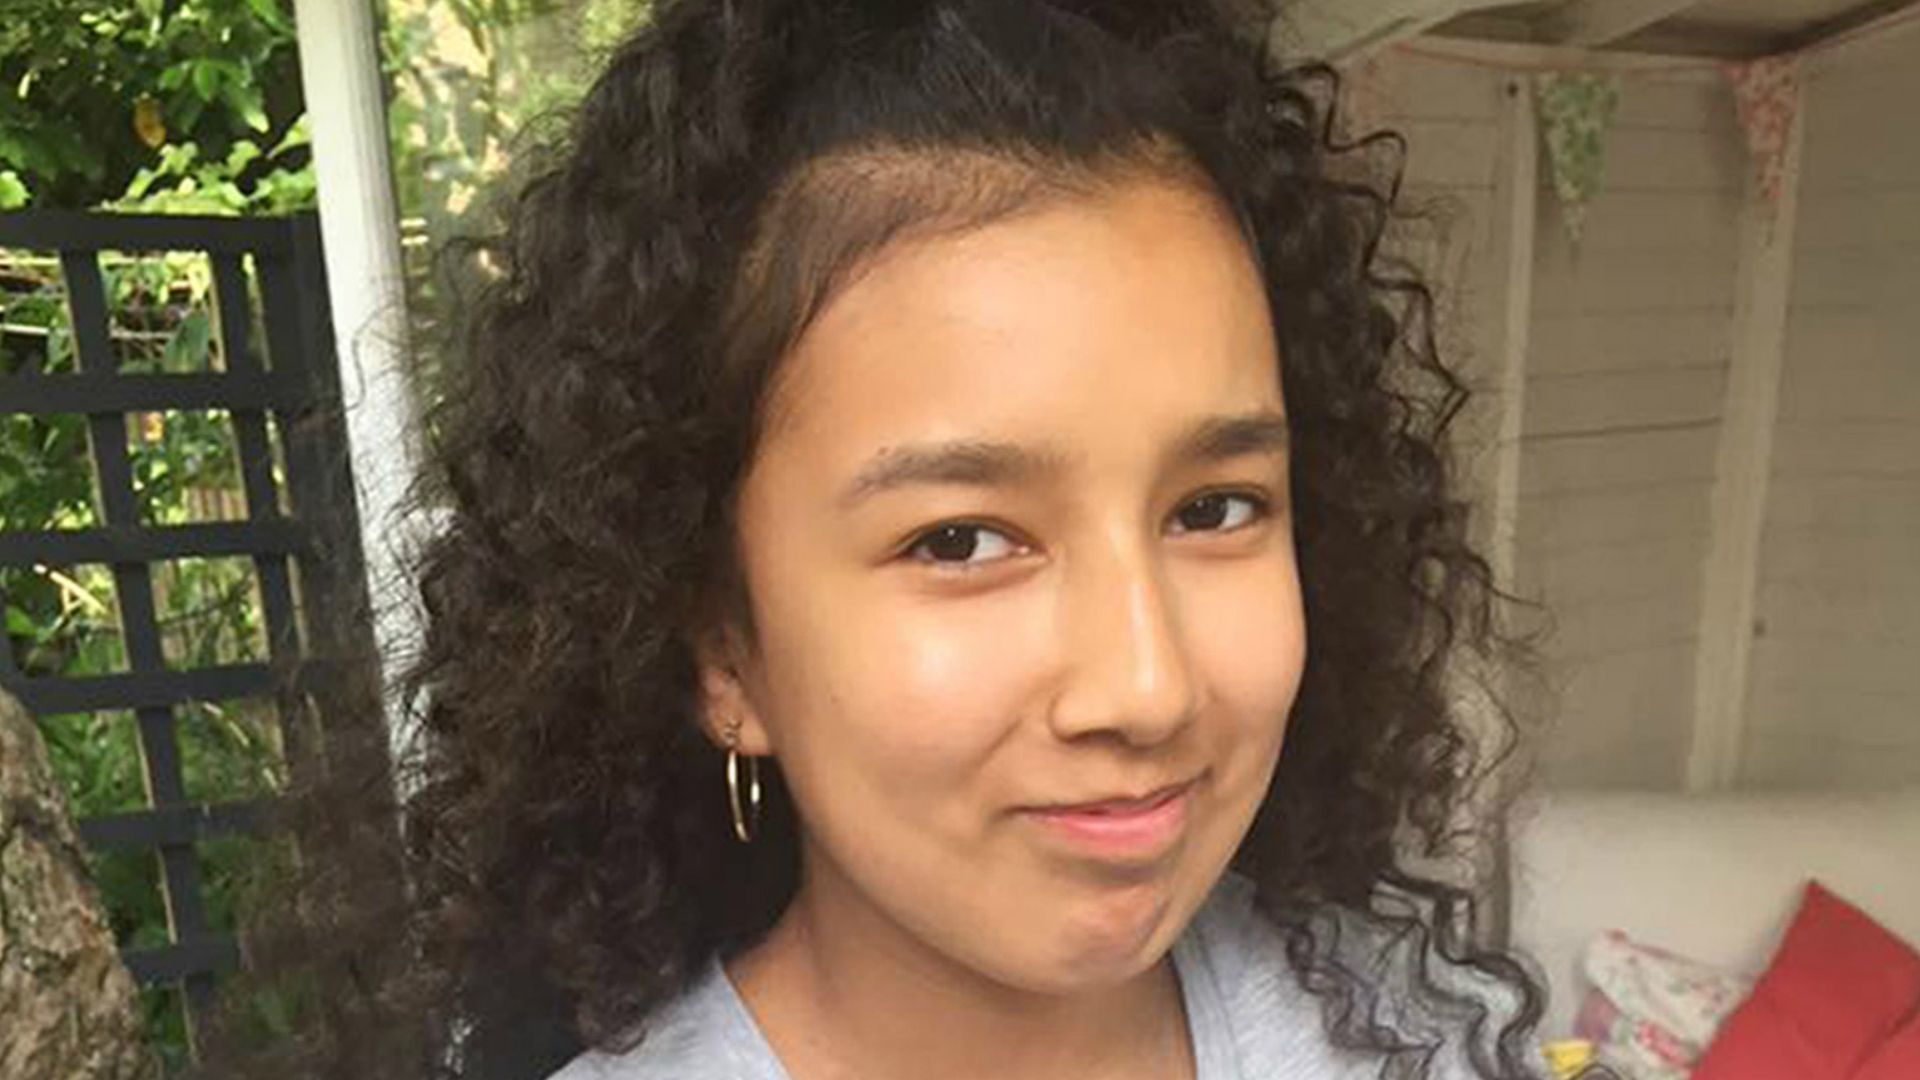 Family seek 12-year-old girl missing after Grenfell Tower fire